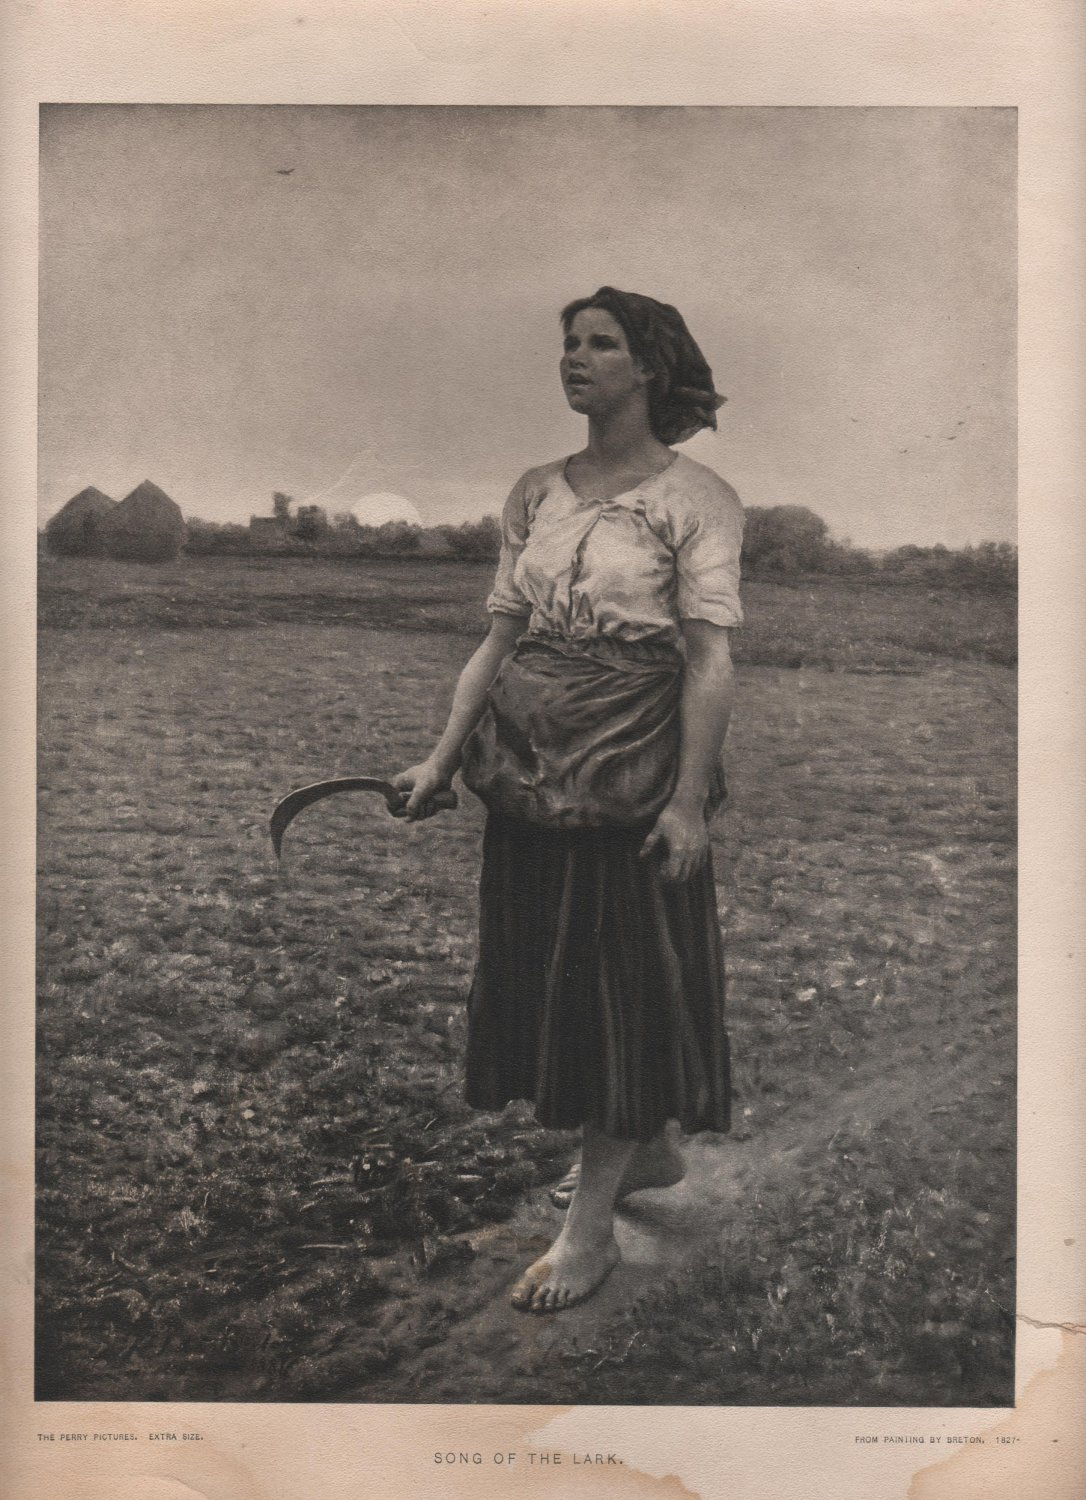 Song of The Lark Print by Breton, Barefoot Girl Singing, Perry Pictures Black & White Print c.1939